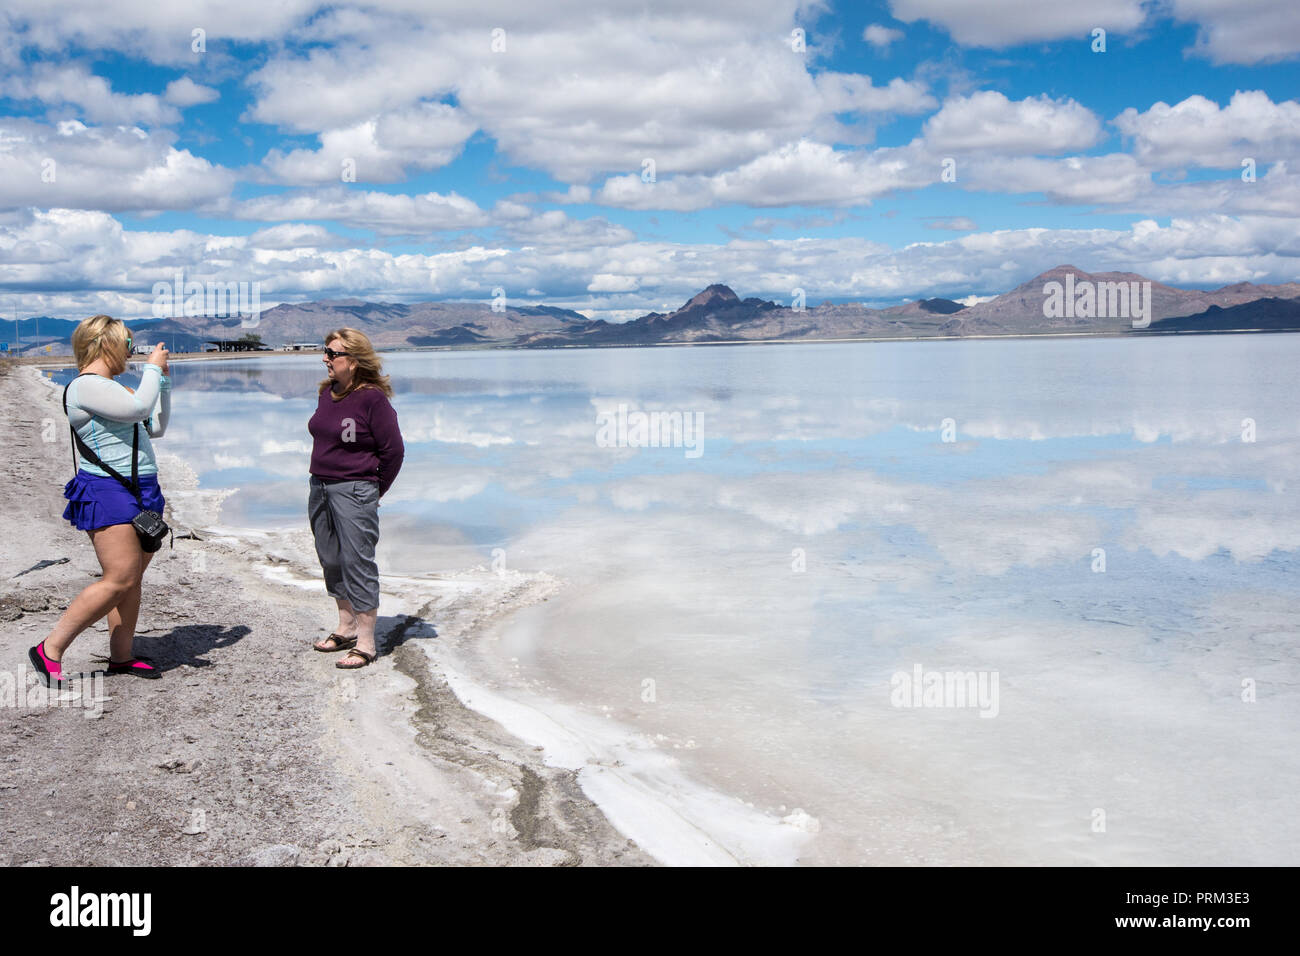 Daughter takes photos of her mother at the Bonneville Salt Flats in Utah Stock Photo